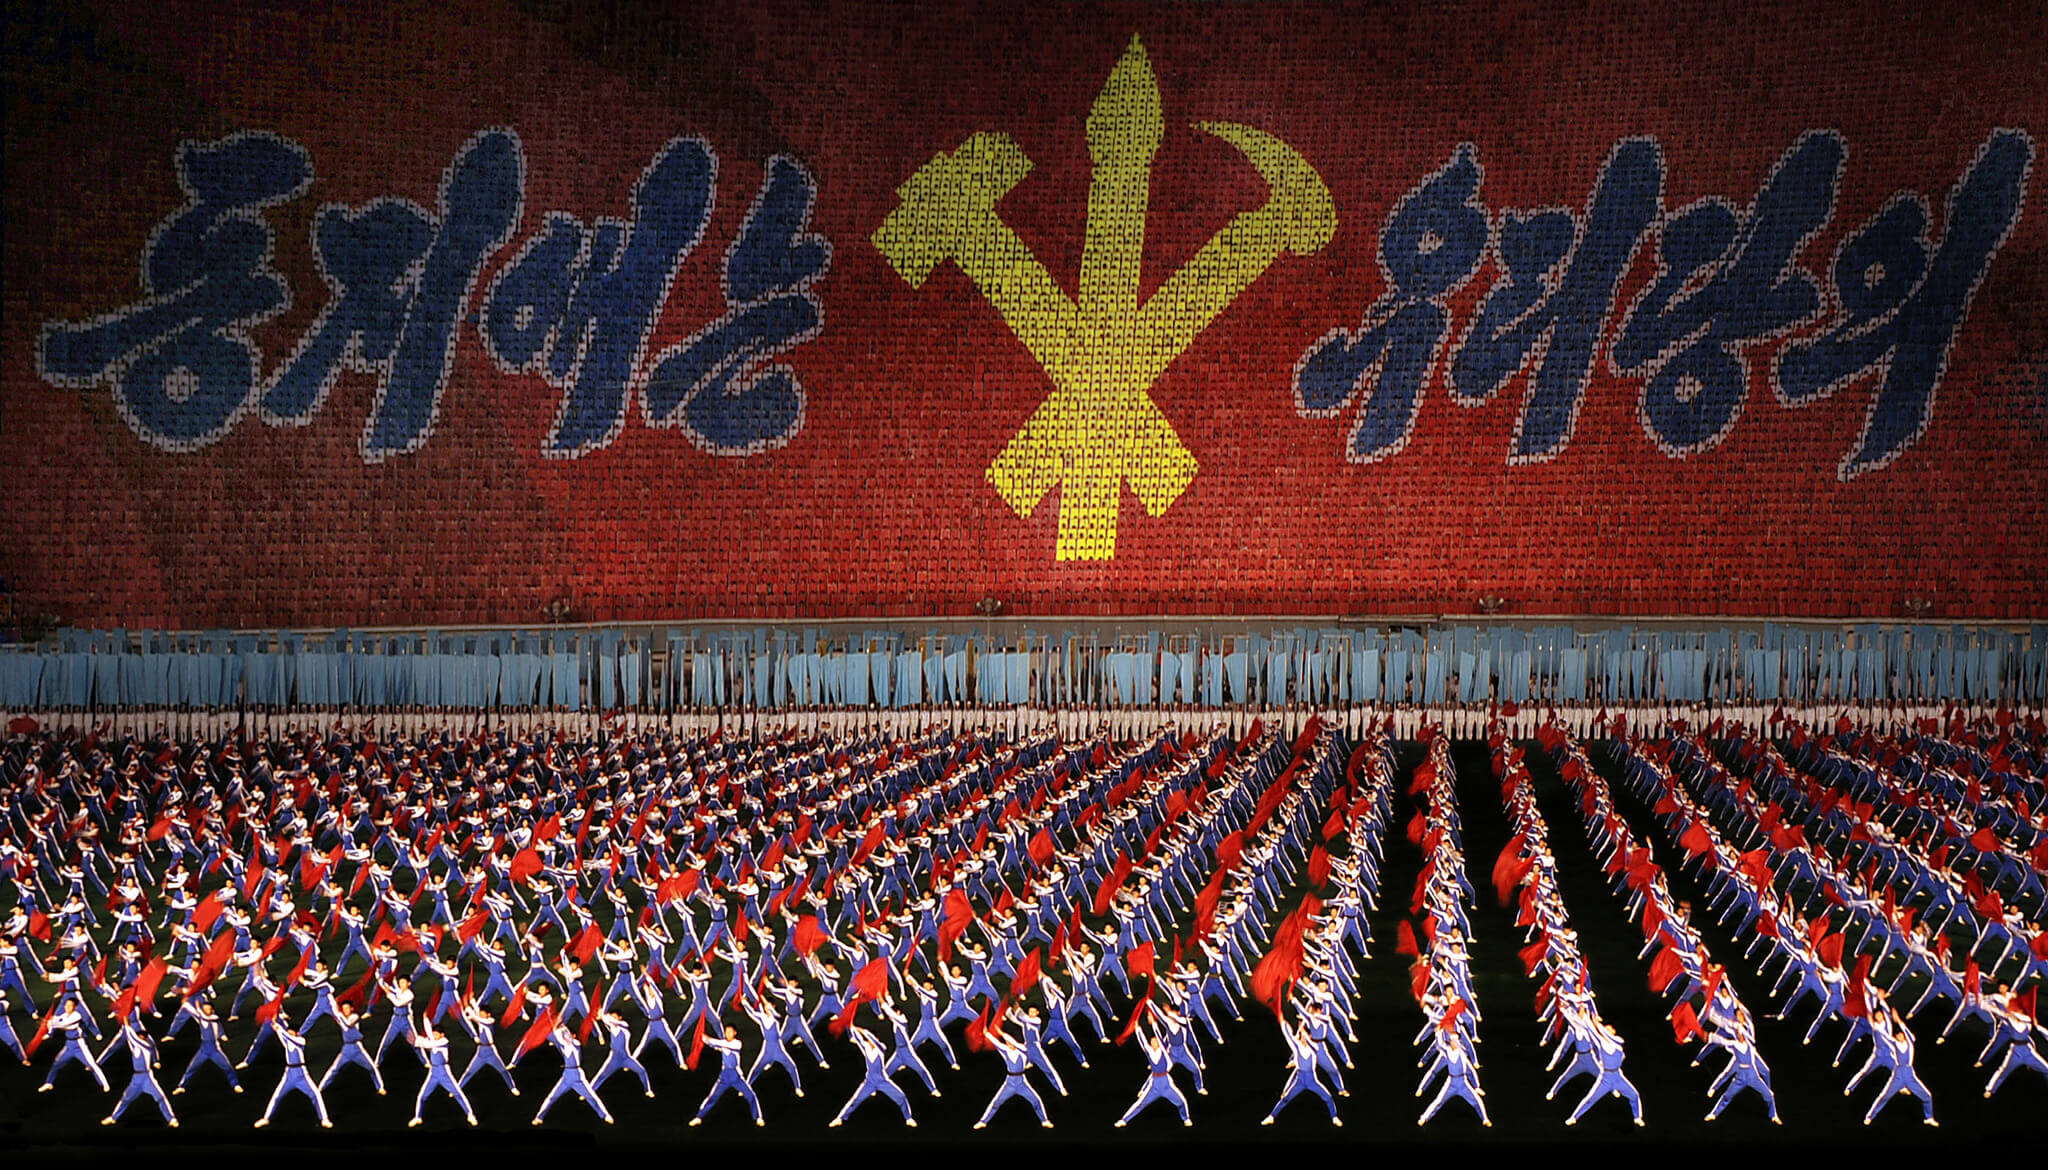 Mass games North Korea 2008-Flickr-mister addd